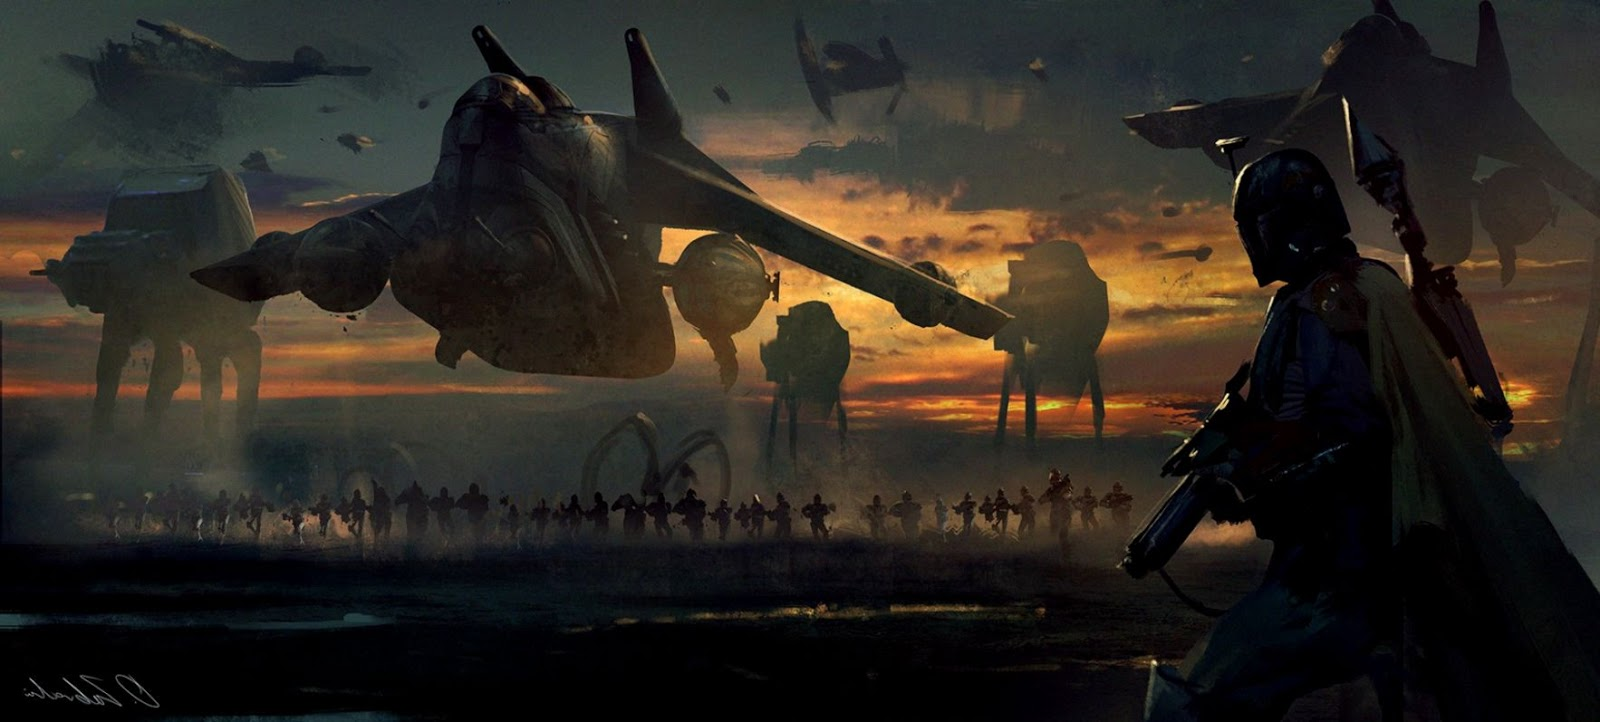 Boba Fett Desktop Wallpaper Posted By Michelle Peltier